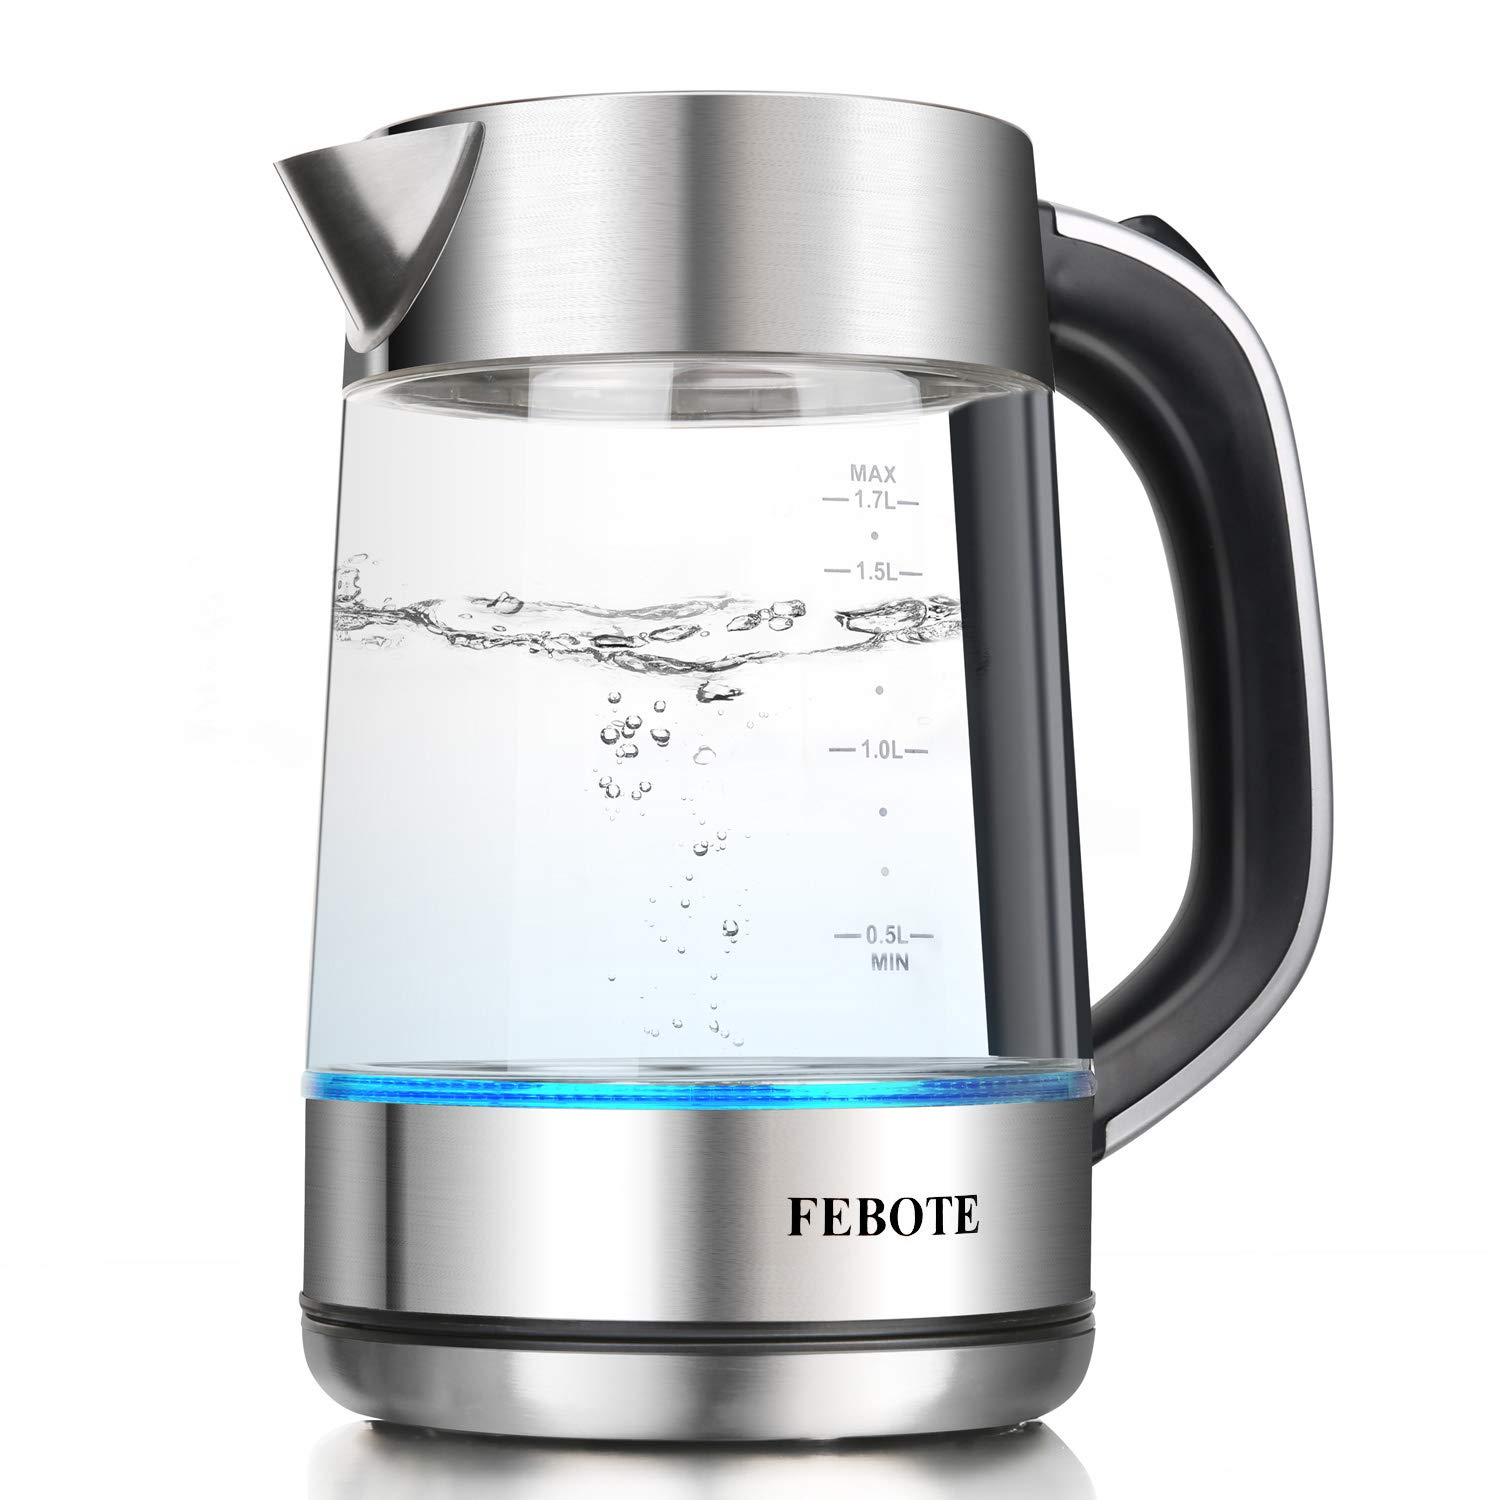 FEBOTE Electric Glass Kettle, 100% Stainless Steel Inner Lid, 1.7L 1500W Fast Boiling Water Pot with Blue Led Indicator, Auto Shutoff & Boil-Dry Protection, Water Heater for Tea, Coffee and Oats